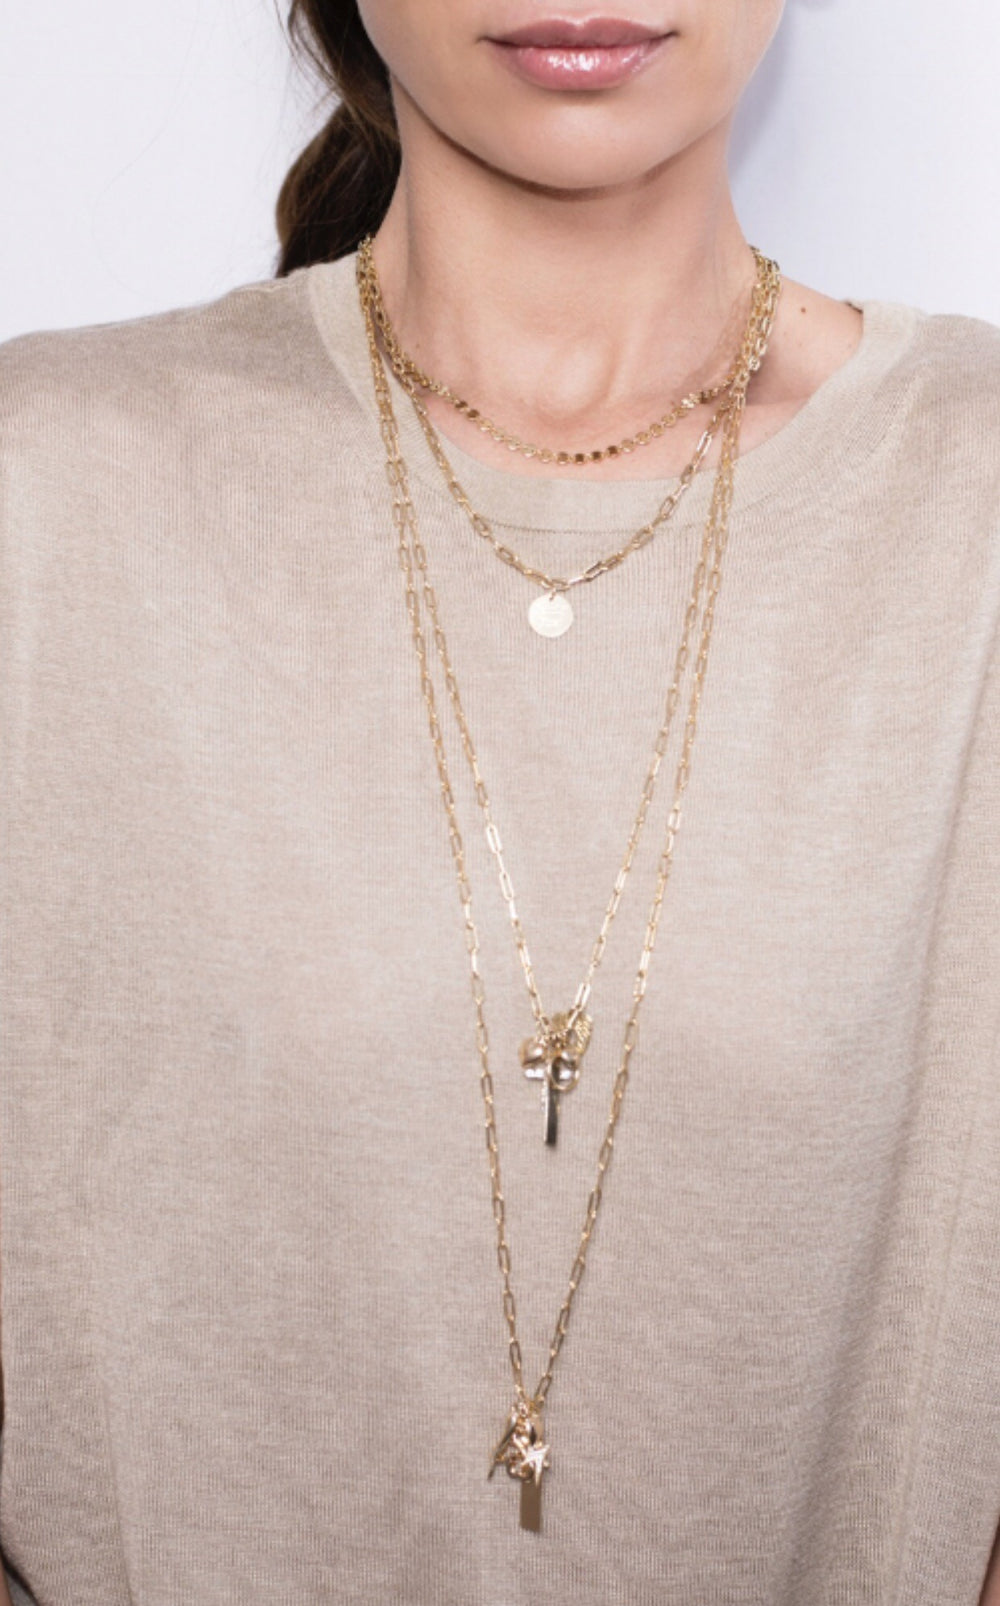 CARA II - THE IBIG LOVE TAG NECKLACE - Kette mit grossem gravierbarem Medaillon Anhänger -  Gold - CLASSYANDFABULOUS JEWELRY